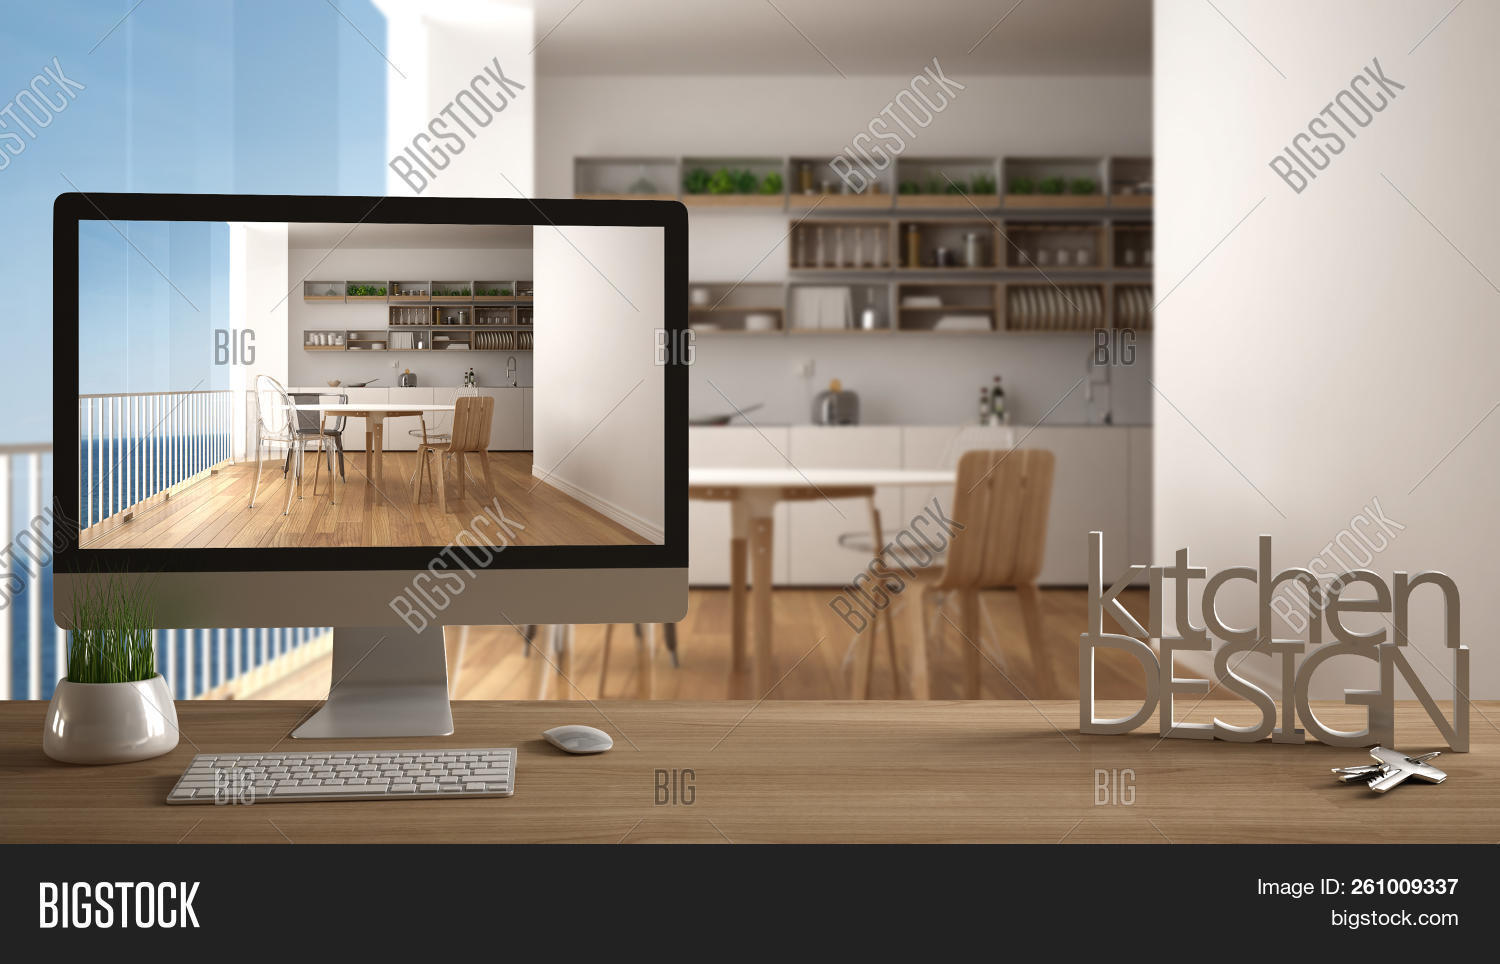 Architect Designer Project Concept Wooden Table With House Keys 3d Letters Making The Words Kitche 261009337 Image Stock Photo